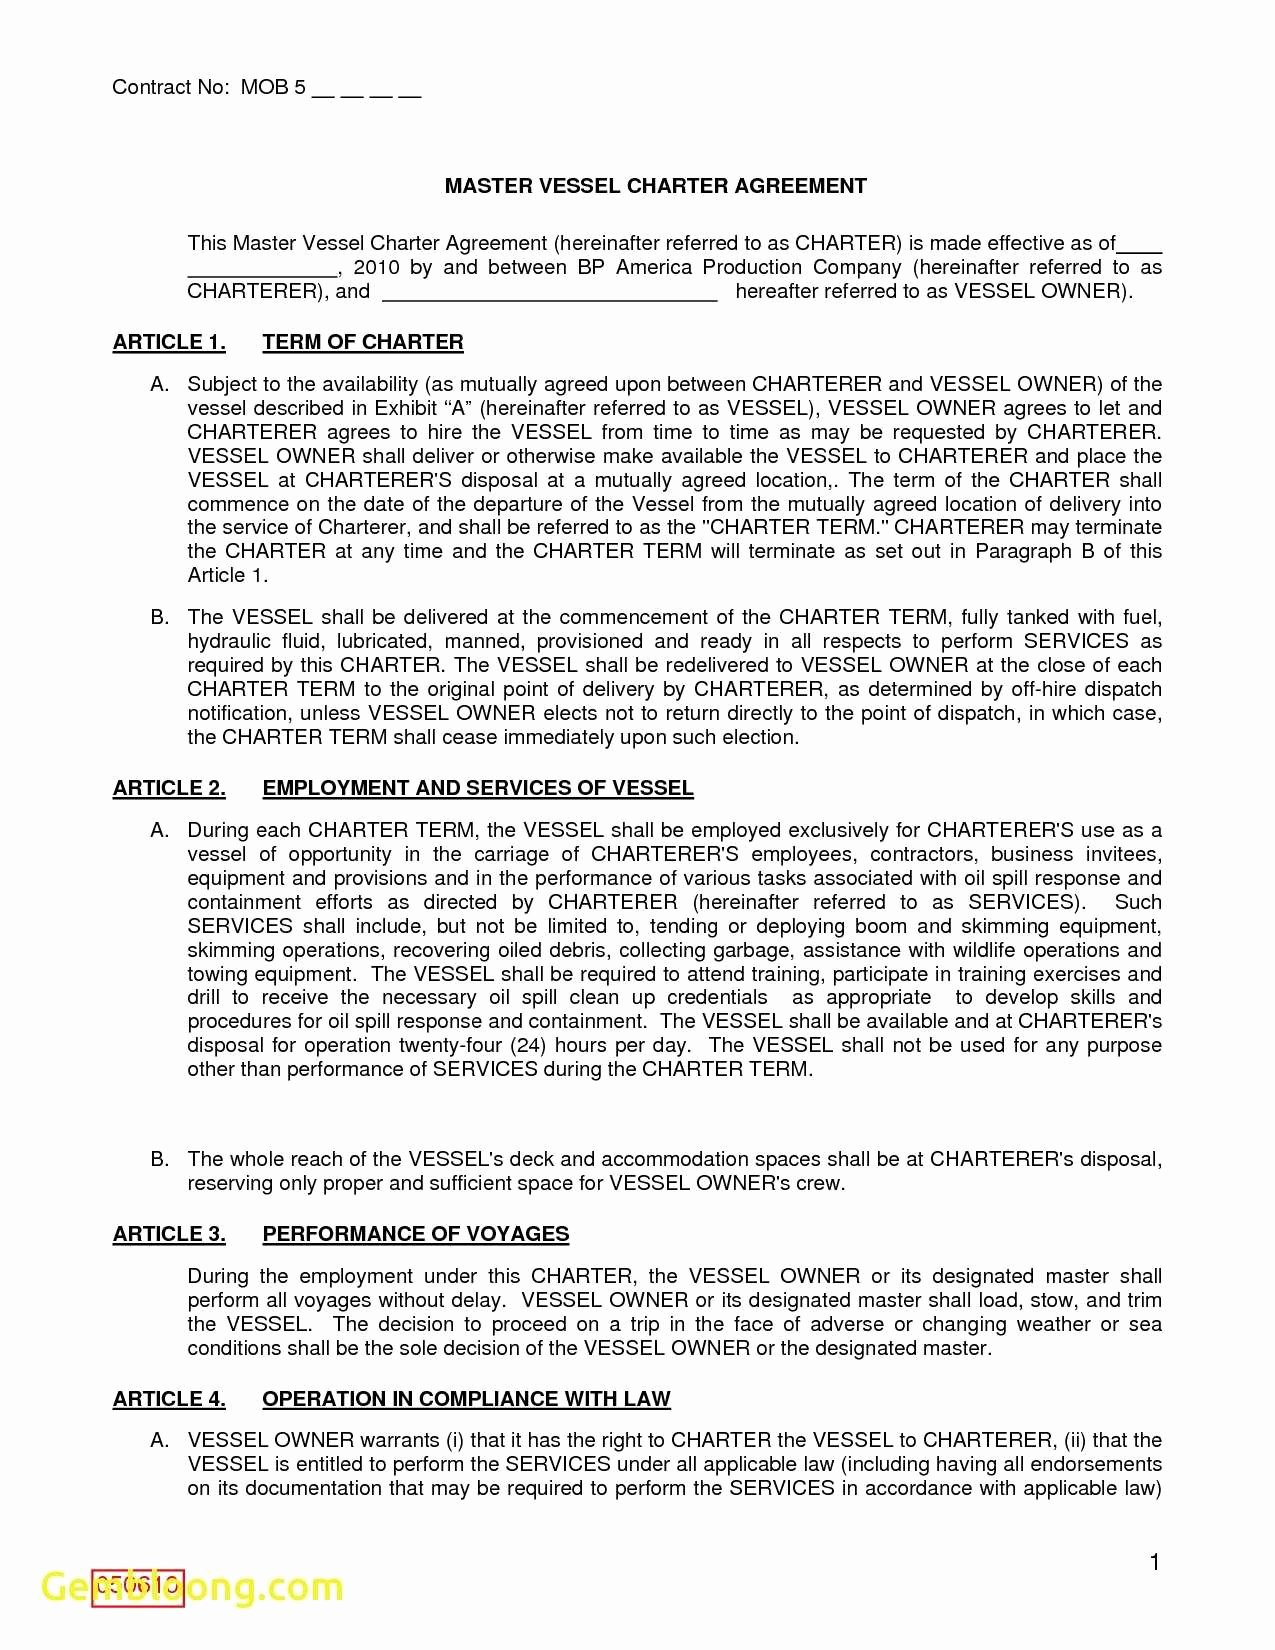 Master Service Agreement Template Luxury Master Service Agreement Template Consulting original